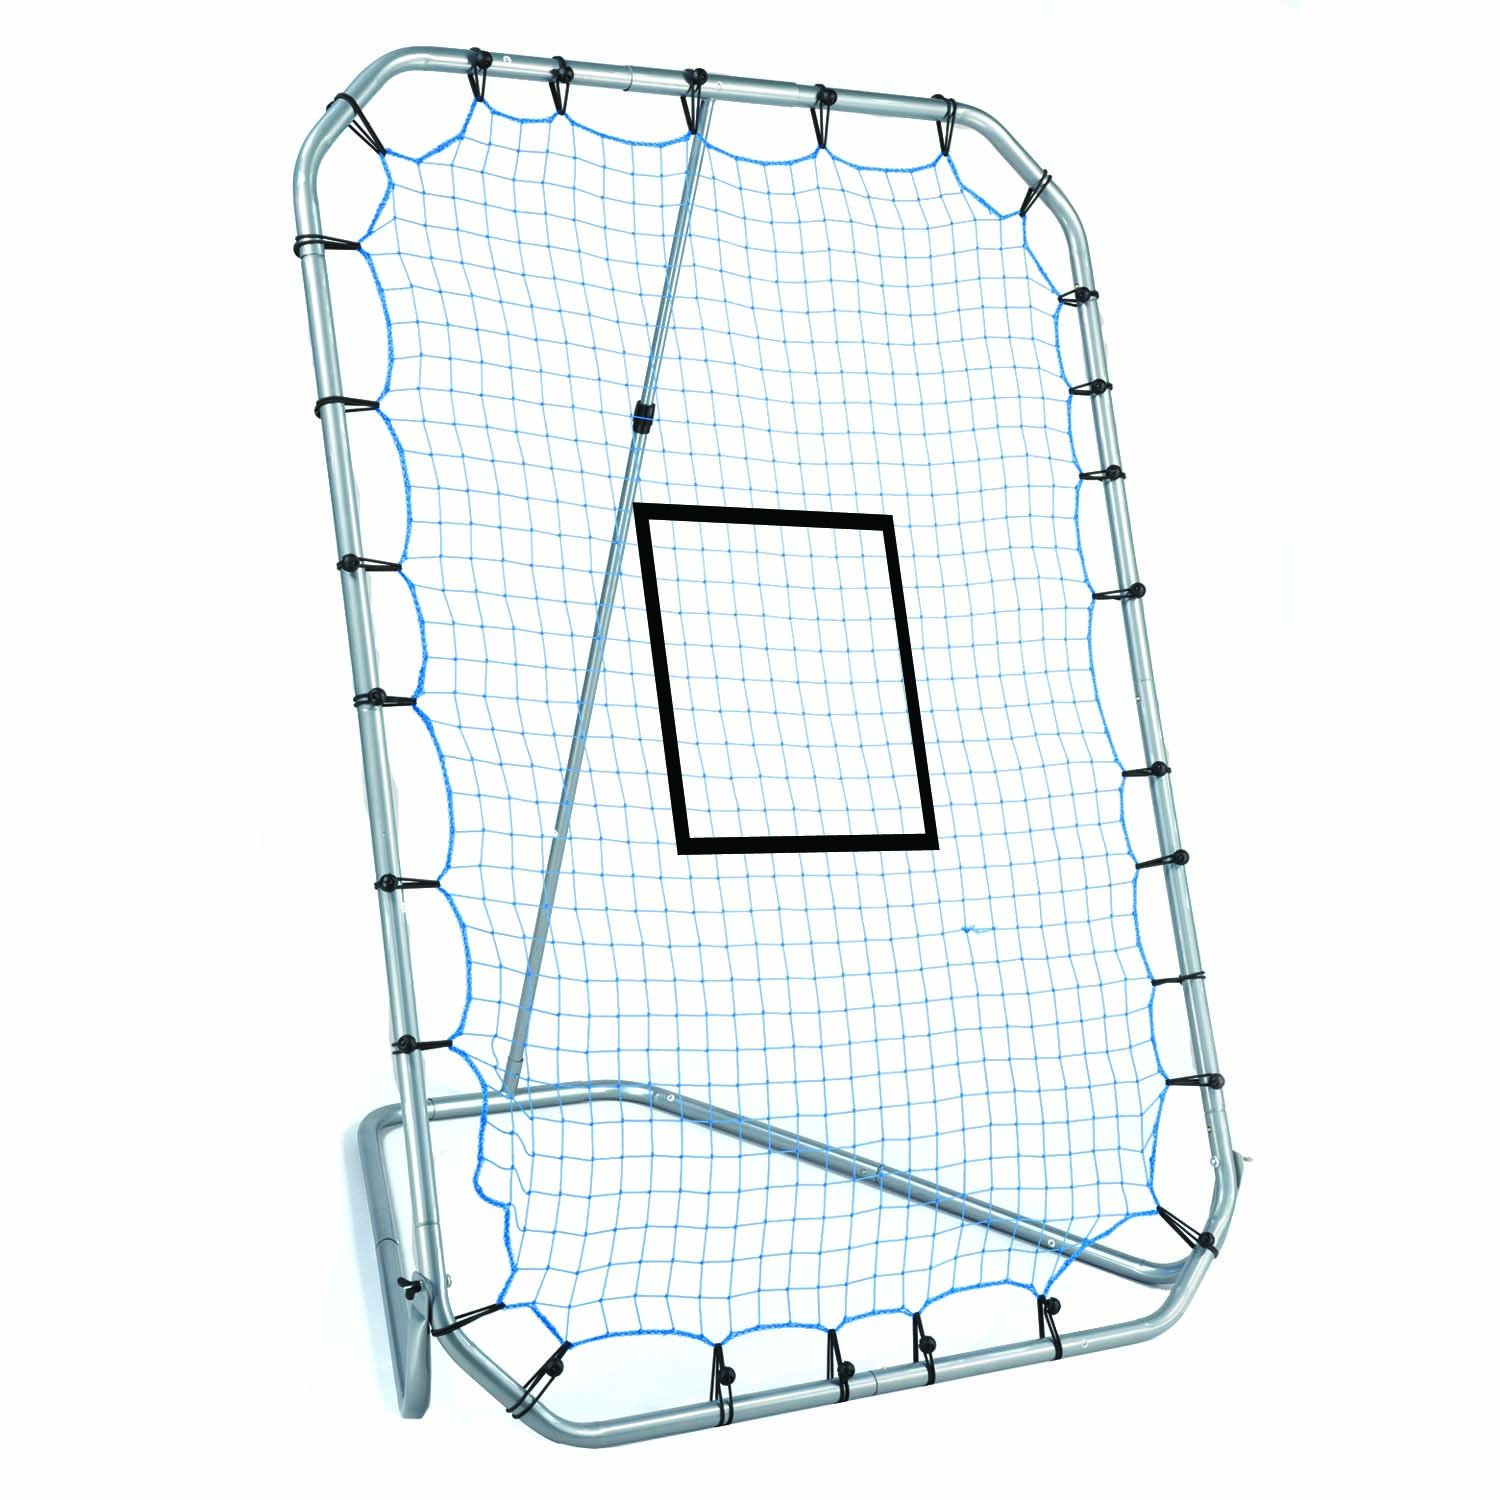 Franklin Sports Baseball Rebounder and Fielding Trainer - All-Angle Pitch Return and Fielding Net - Perfect Baseball Training Aid - 72 x 52 Inches by Franklin Sports